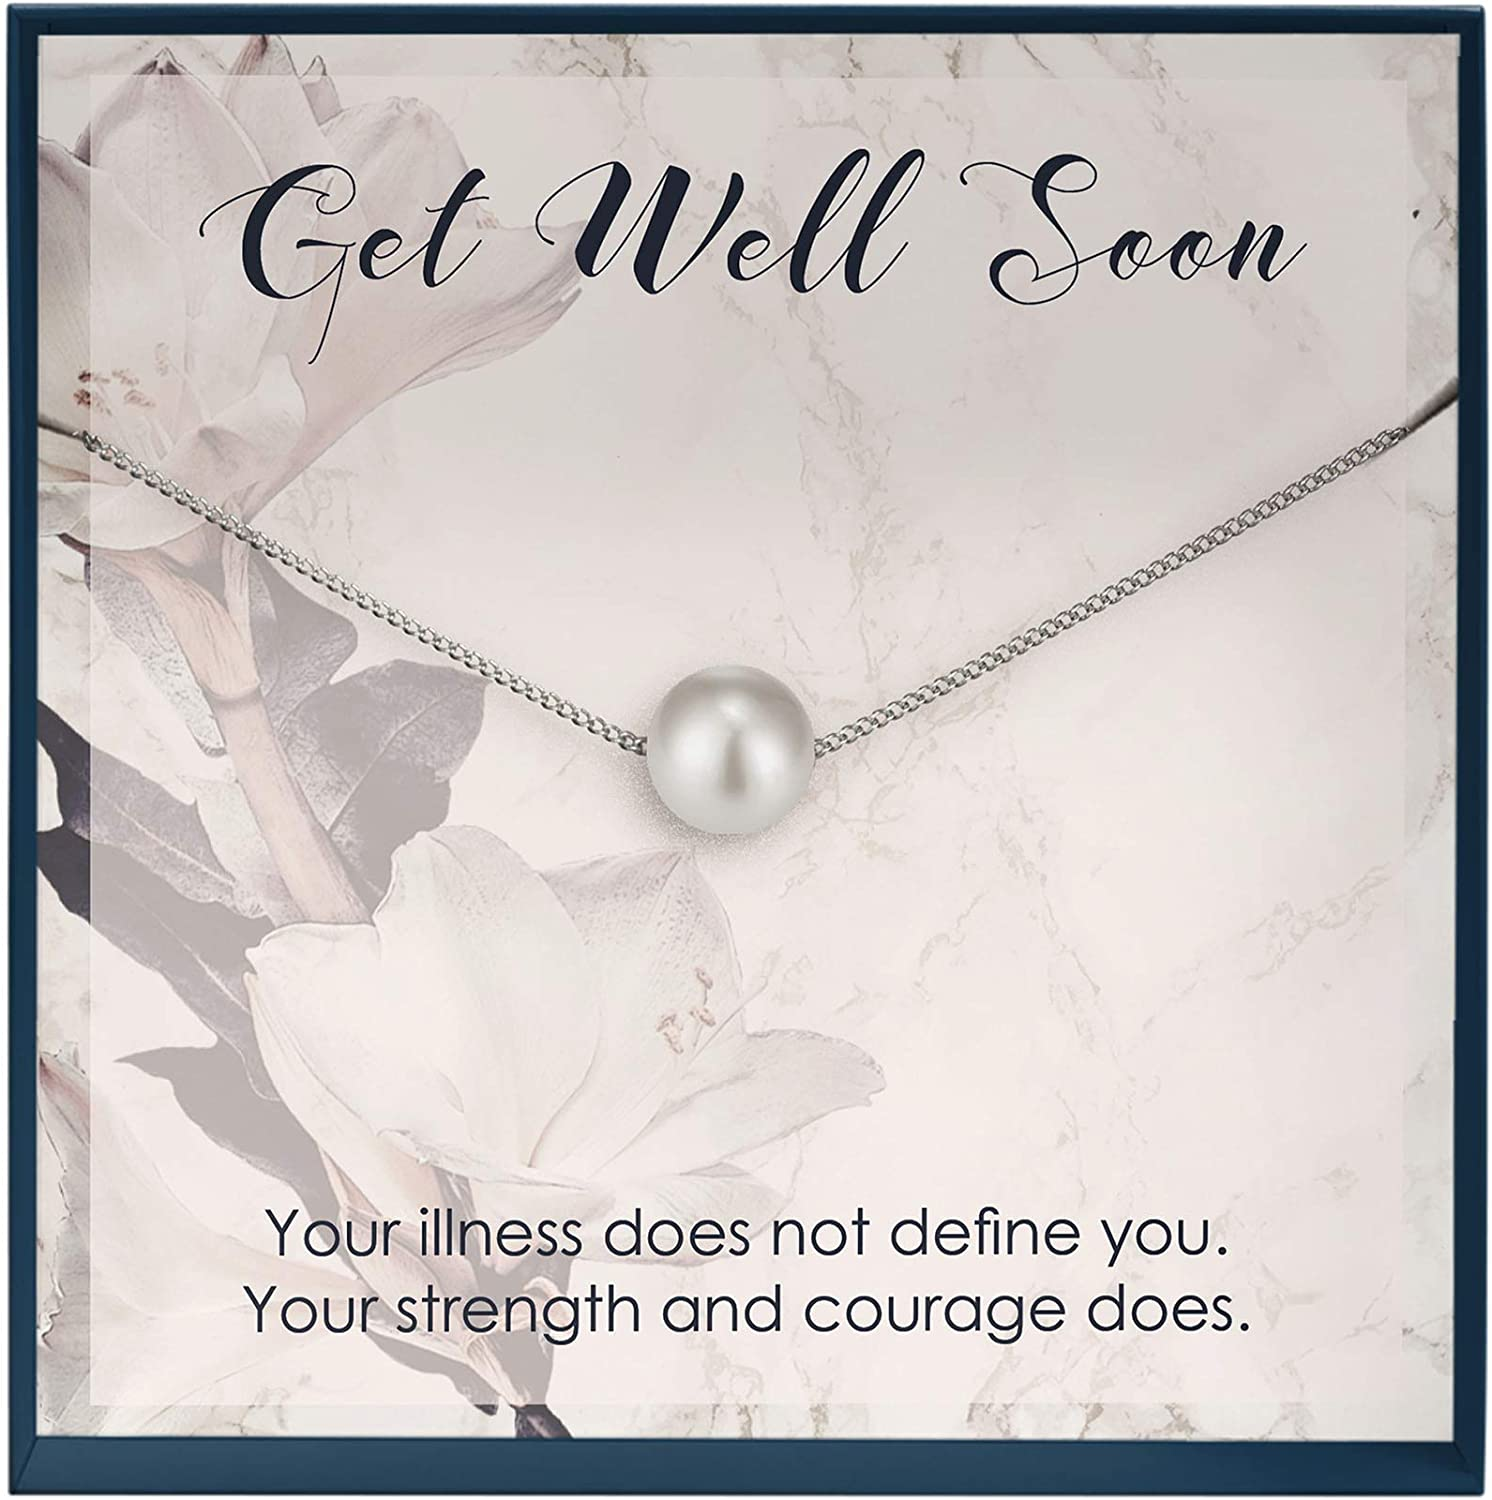 Muse Infinite Custom Get Well Soon Gift Get Better Recovery Gift Ideas Get Well Soon Gift Get Well Gift Ideas Get Well Soon Care Jewelry